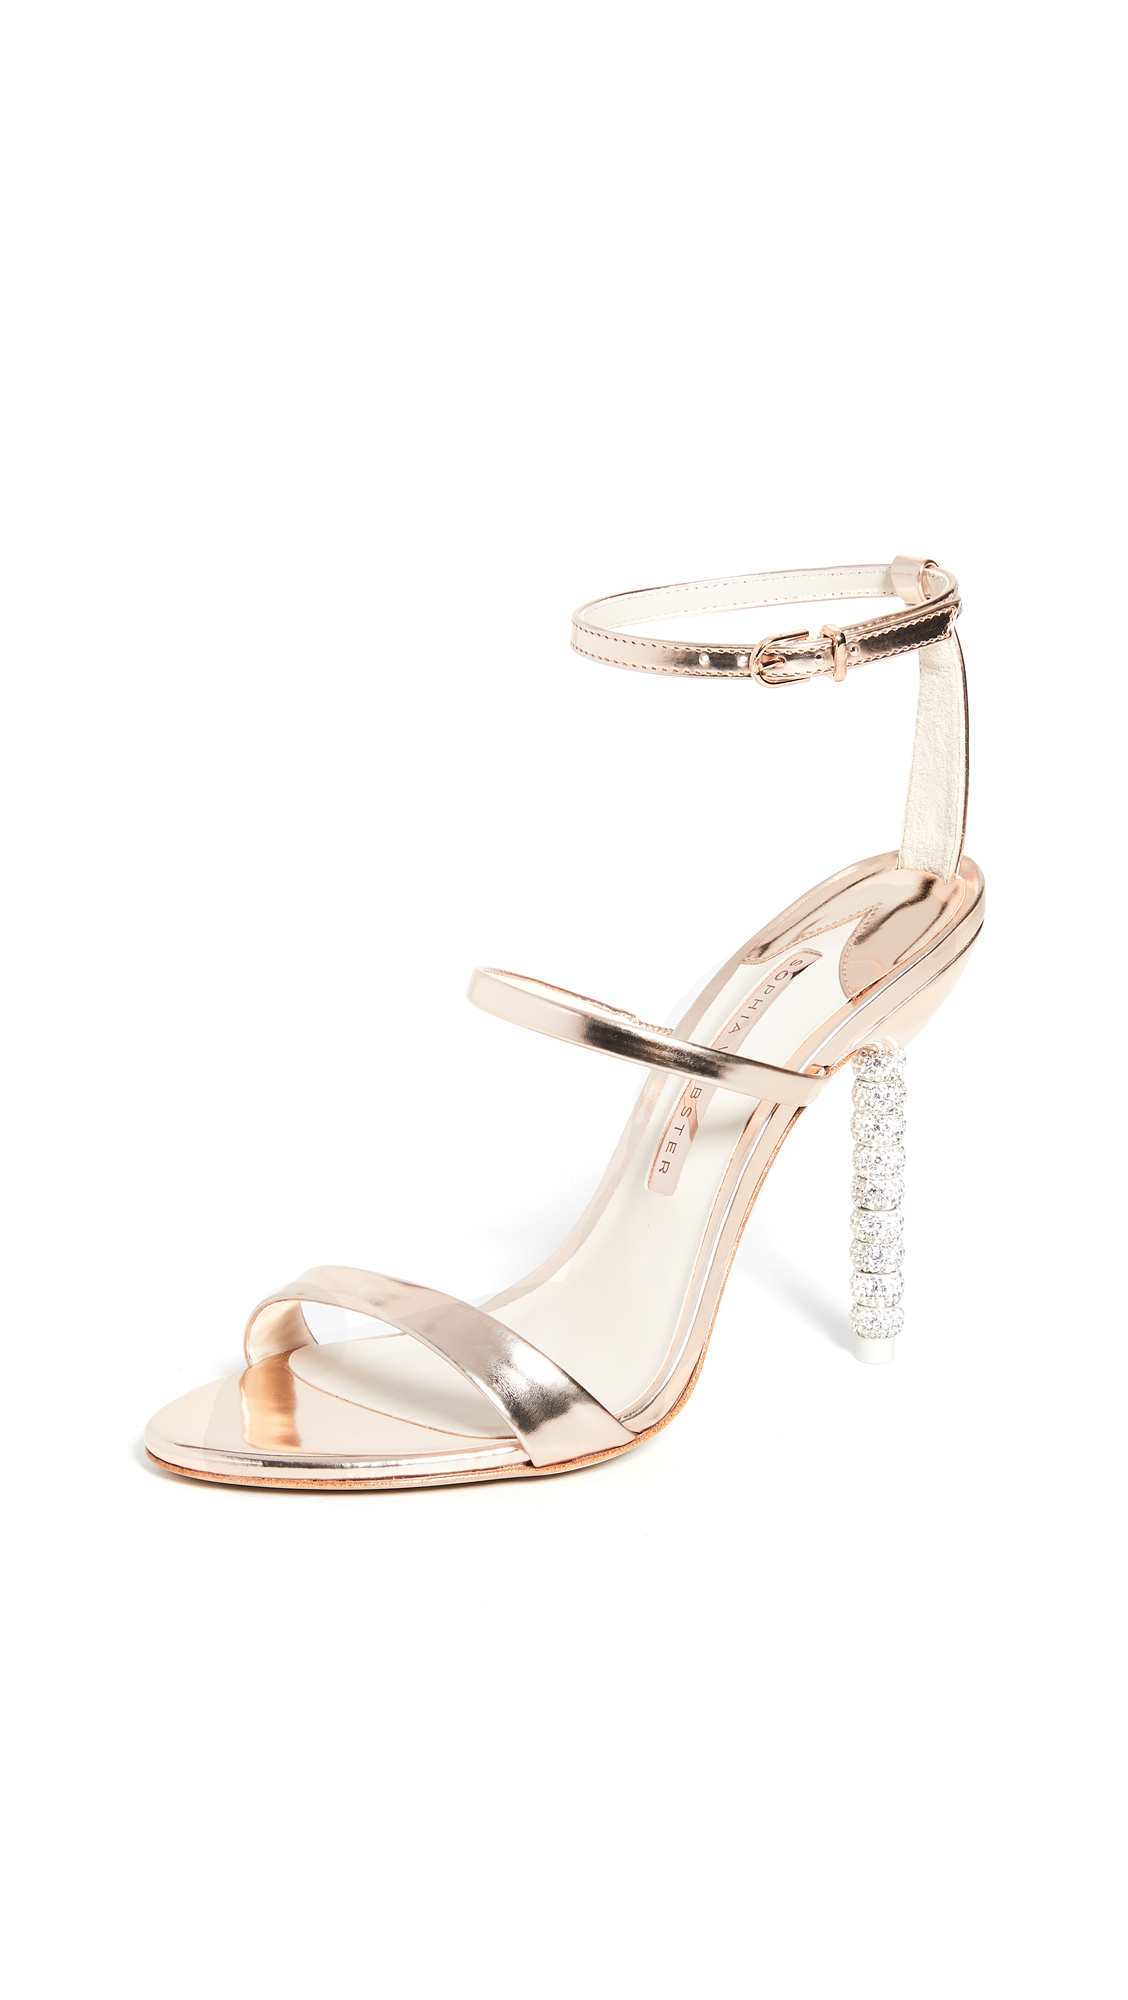 Sophia Webster Rosalind Crystal Sandals In Rose Gold